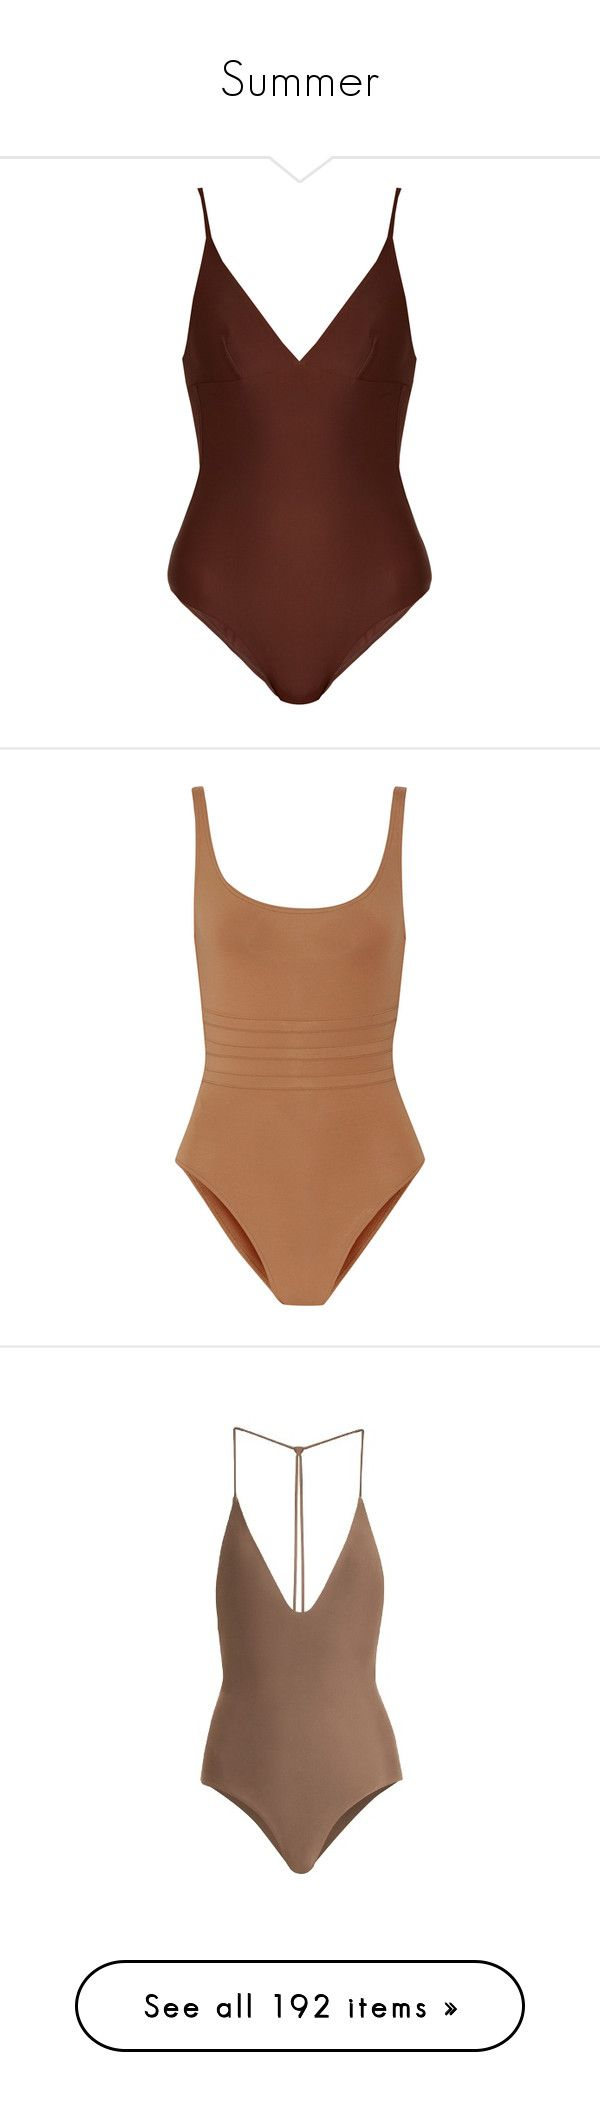 """""""Summer"""" by tenindvr ❤ liked on Polyvore featuring swimwear, one-piece swimsuits, swimsuit, brown, swimsuit swimwear, seamless bathing suits, brown swimsuit, brown one piece swimsuit, plunge bathing suit and tops"""